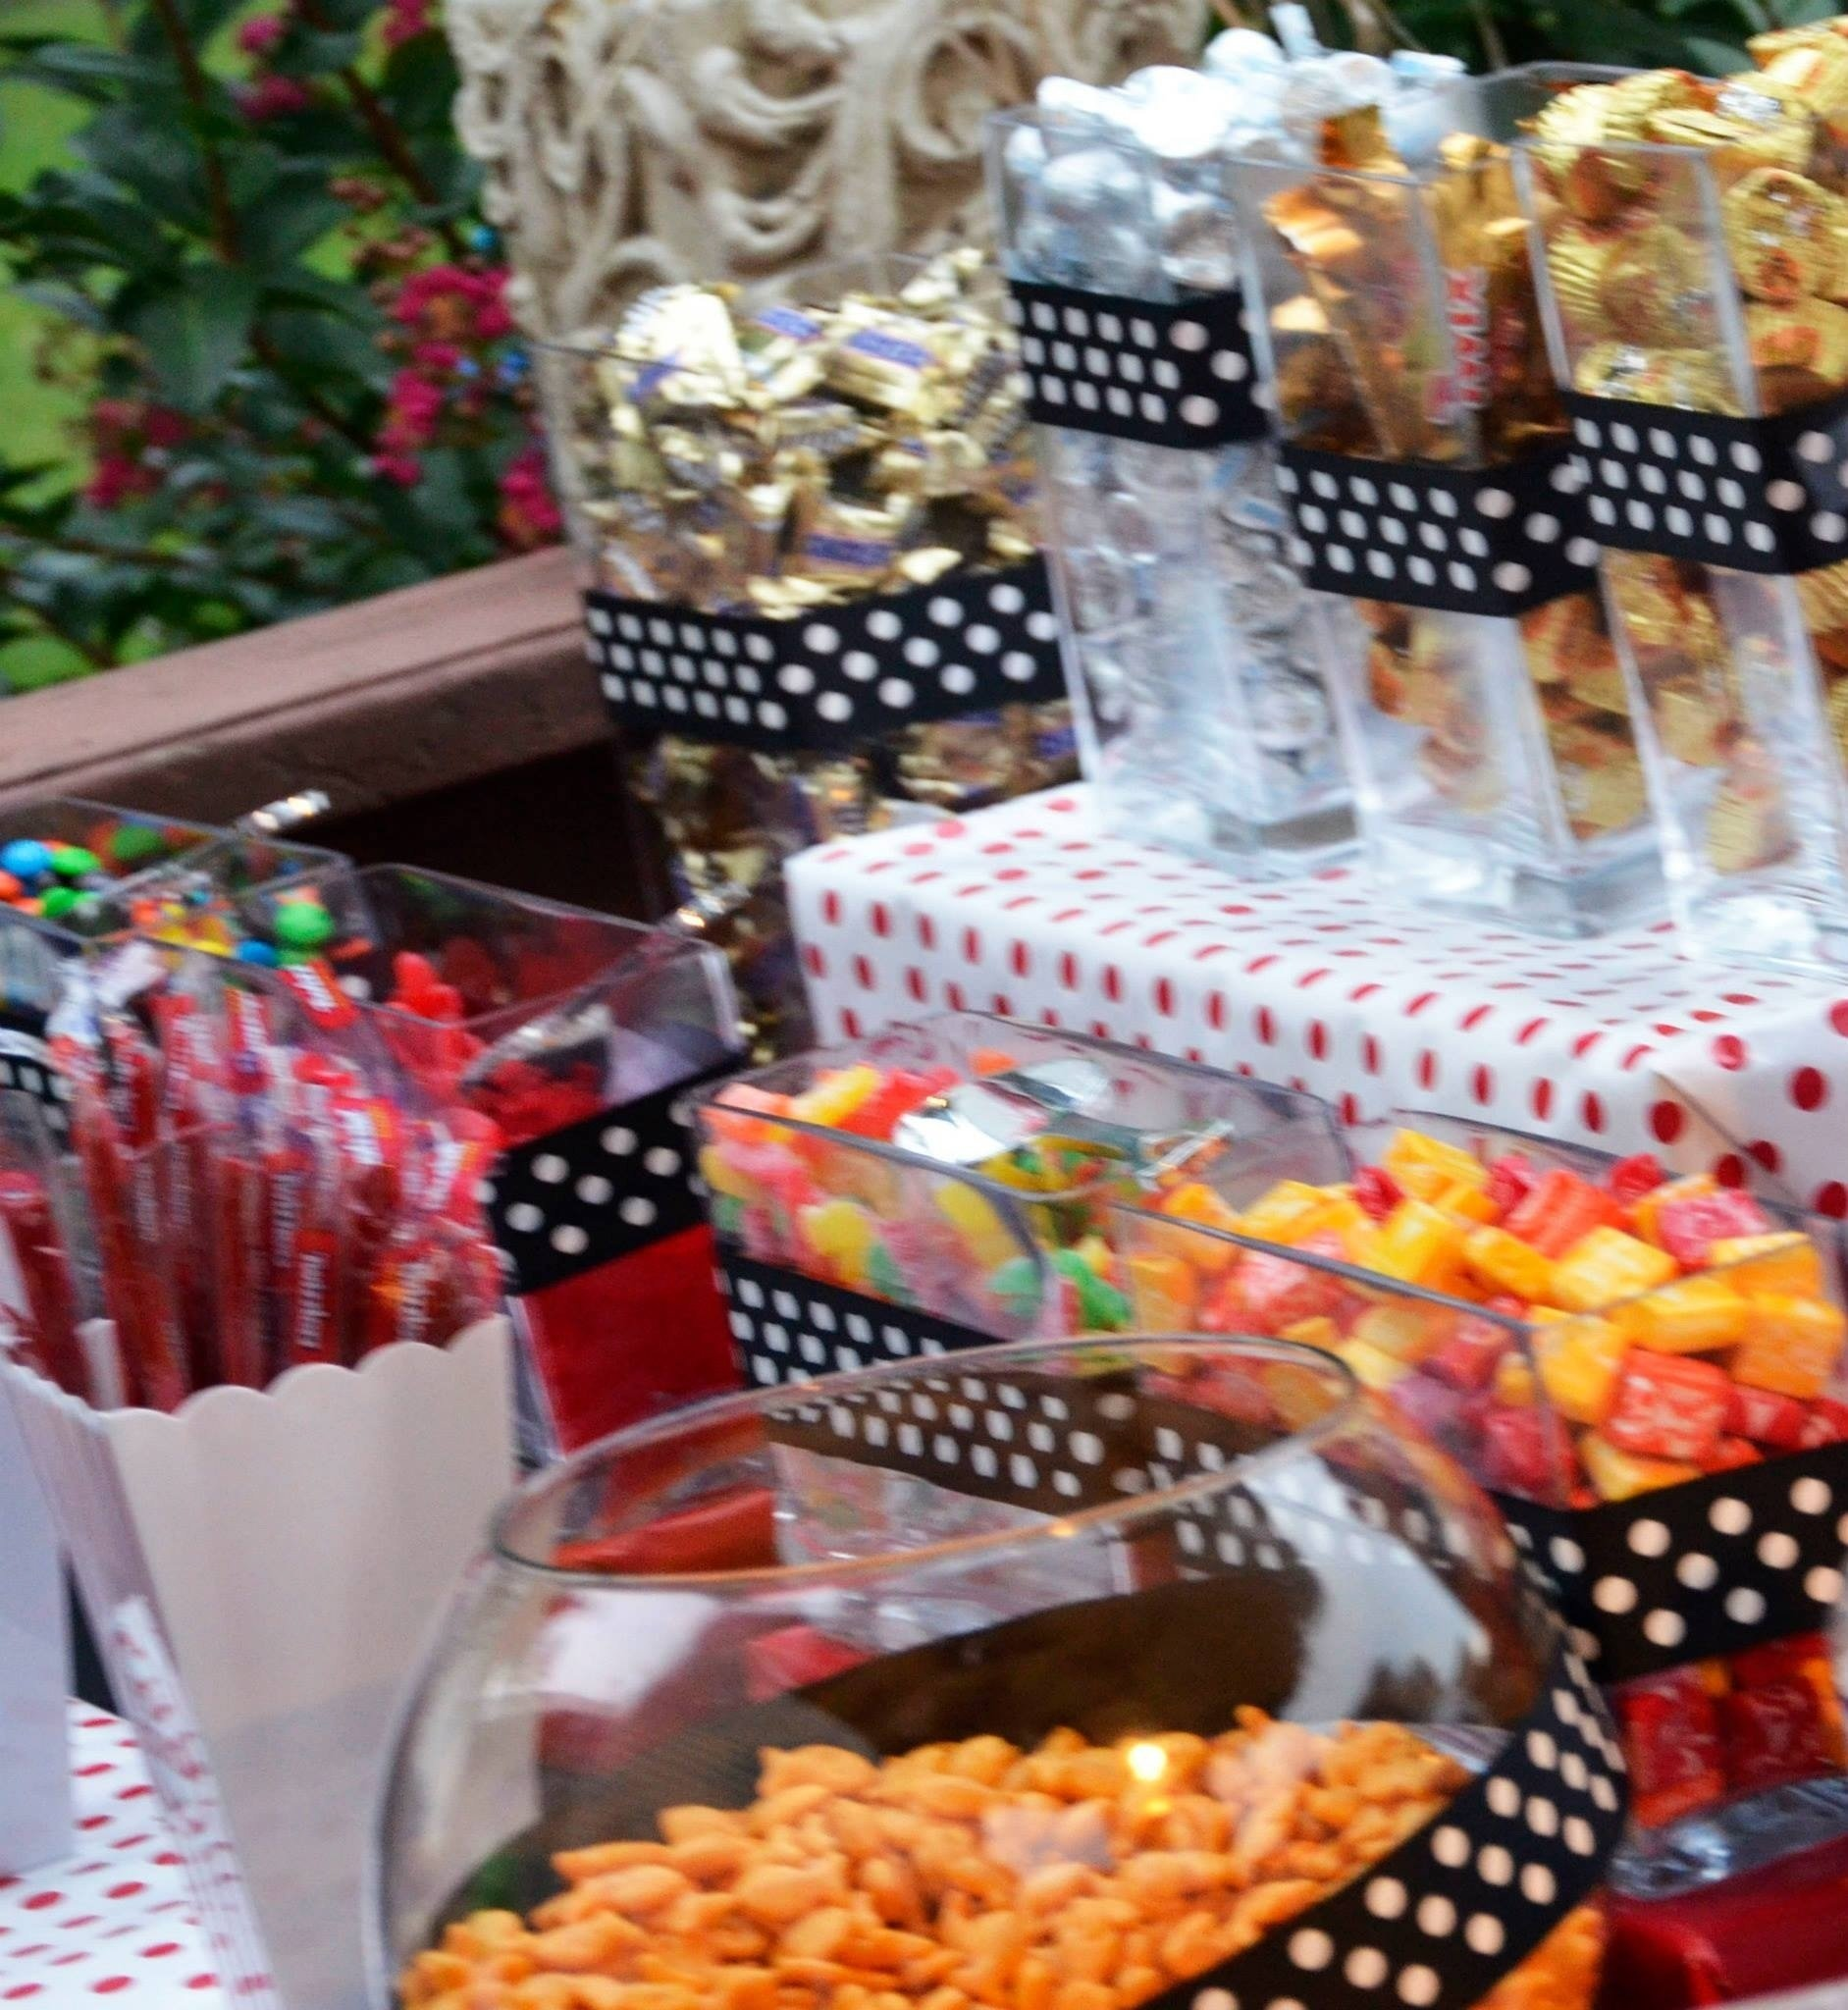 10 Stunning Kids Birthday Party Ideas Pinterest concession stand for an outdoor movie birthday party kids 2020